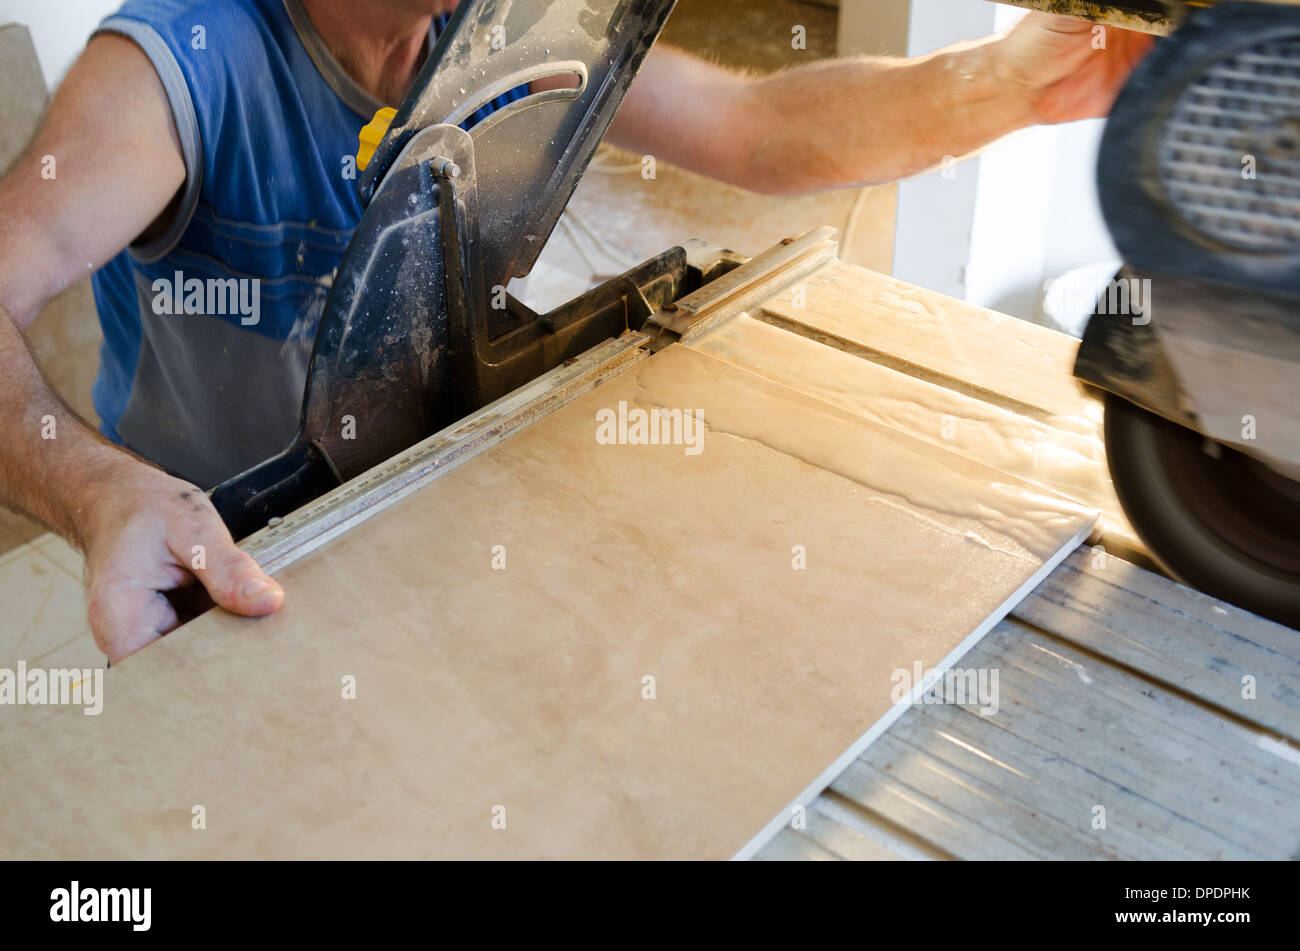 A wet saw cutter is being used to cut floor tile stock photo a wet saw cutter is being used to cut floor tile dailygadgetfo Choice Image